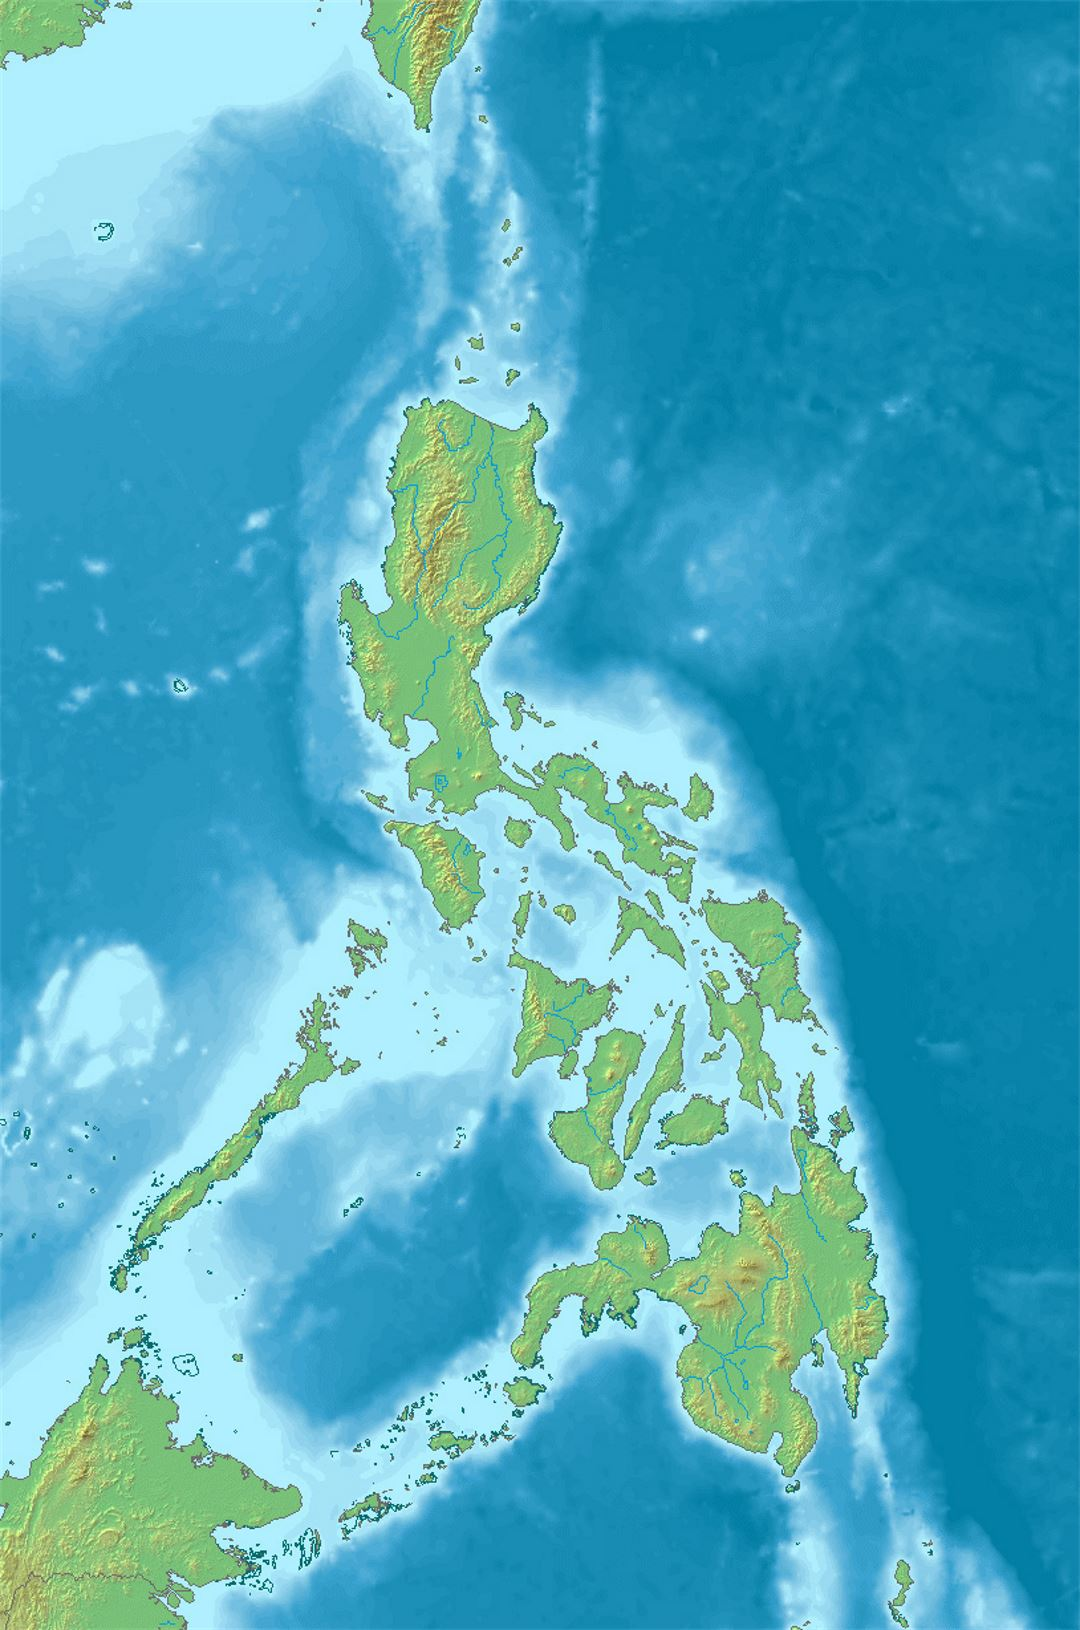 Detailed relief map of Philippines